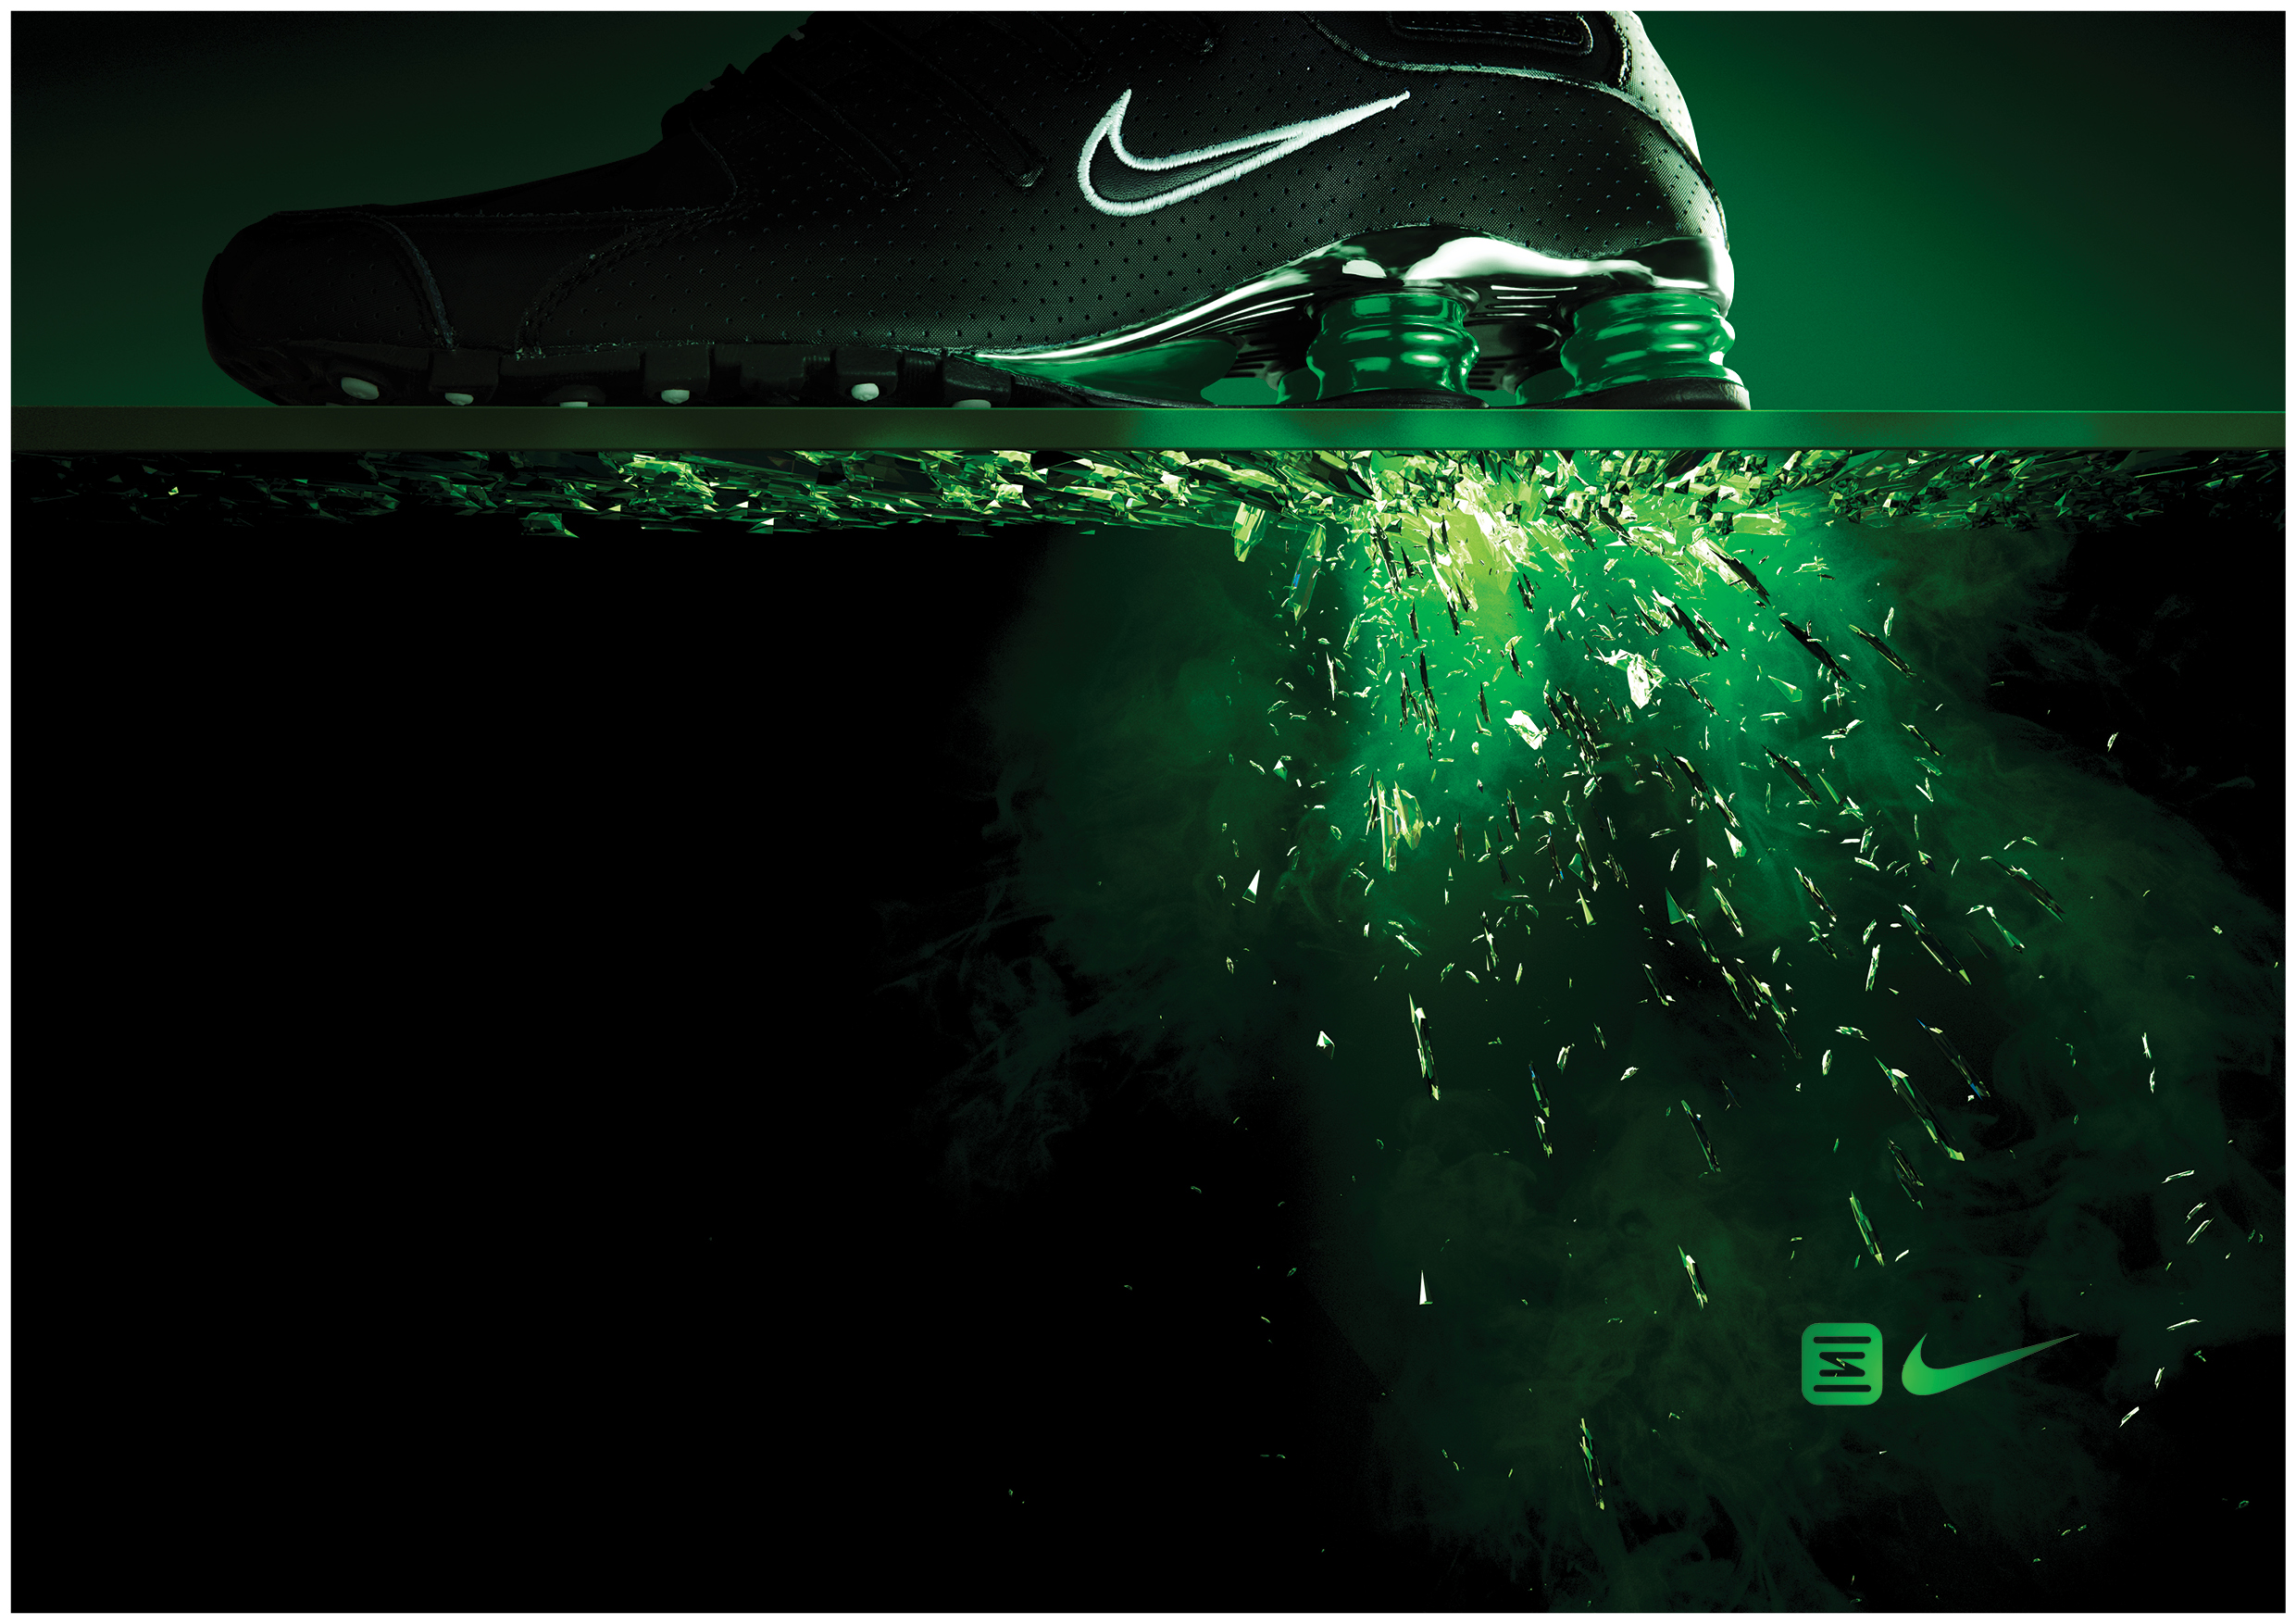 Nike Shoes Marketing